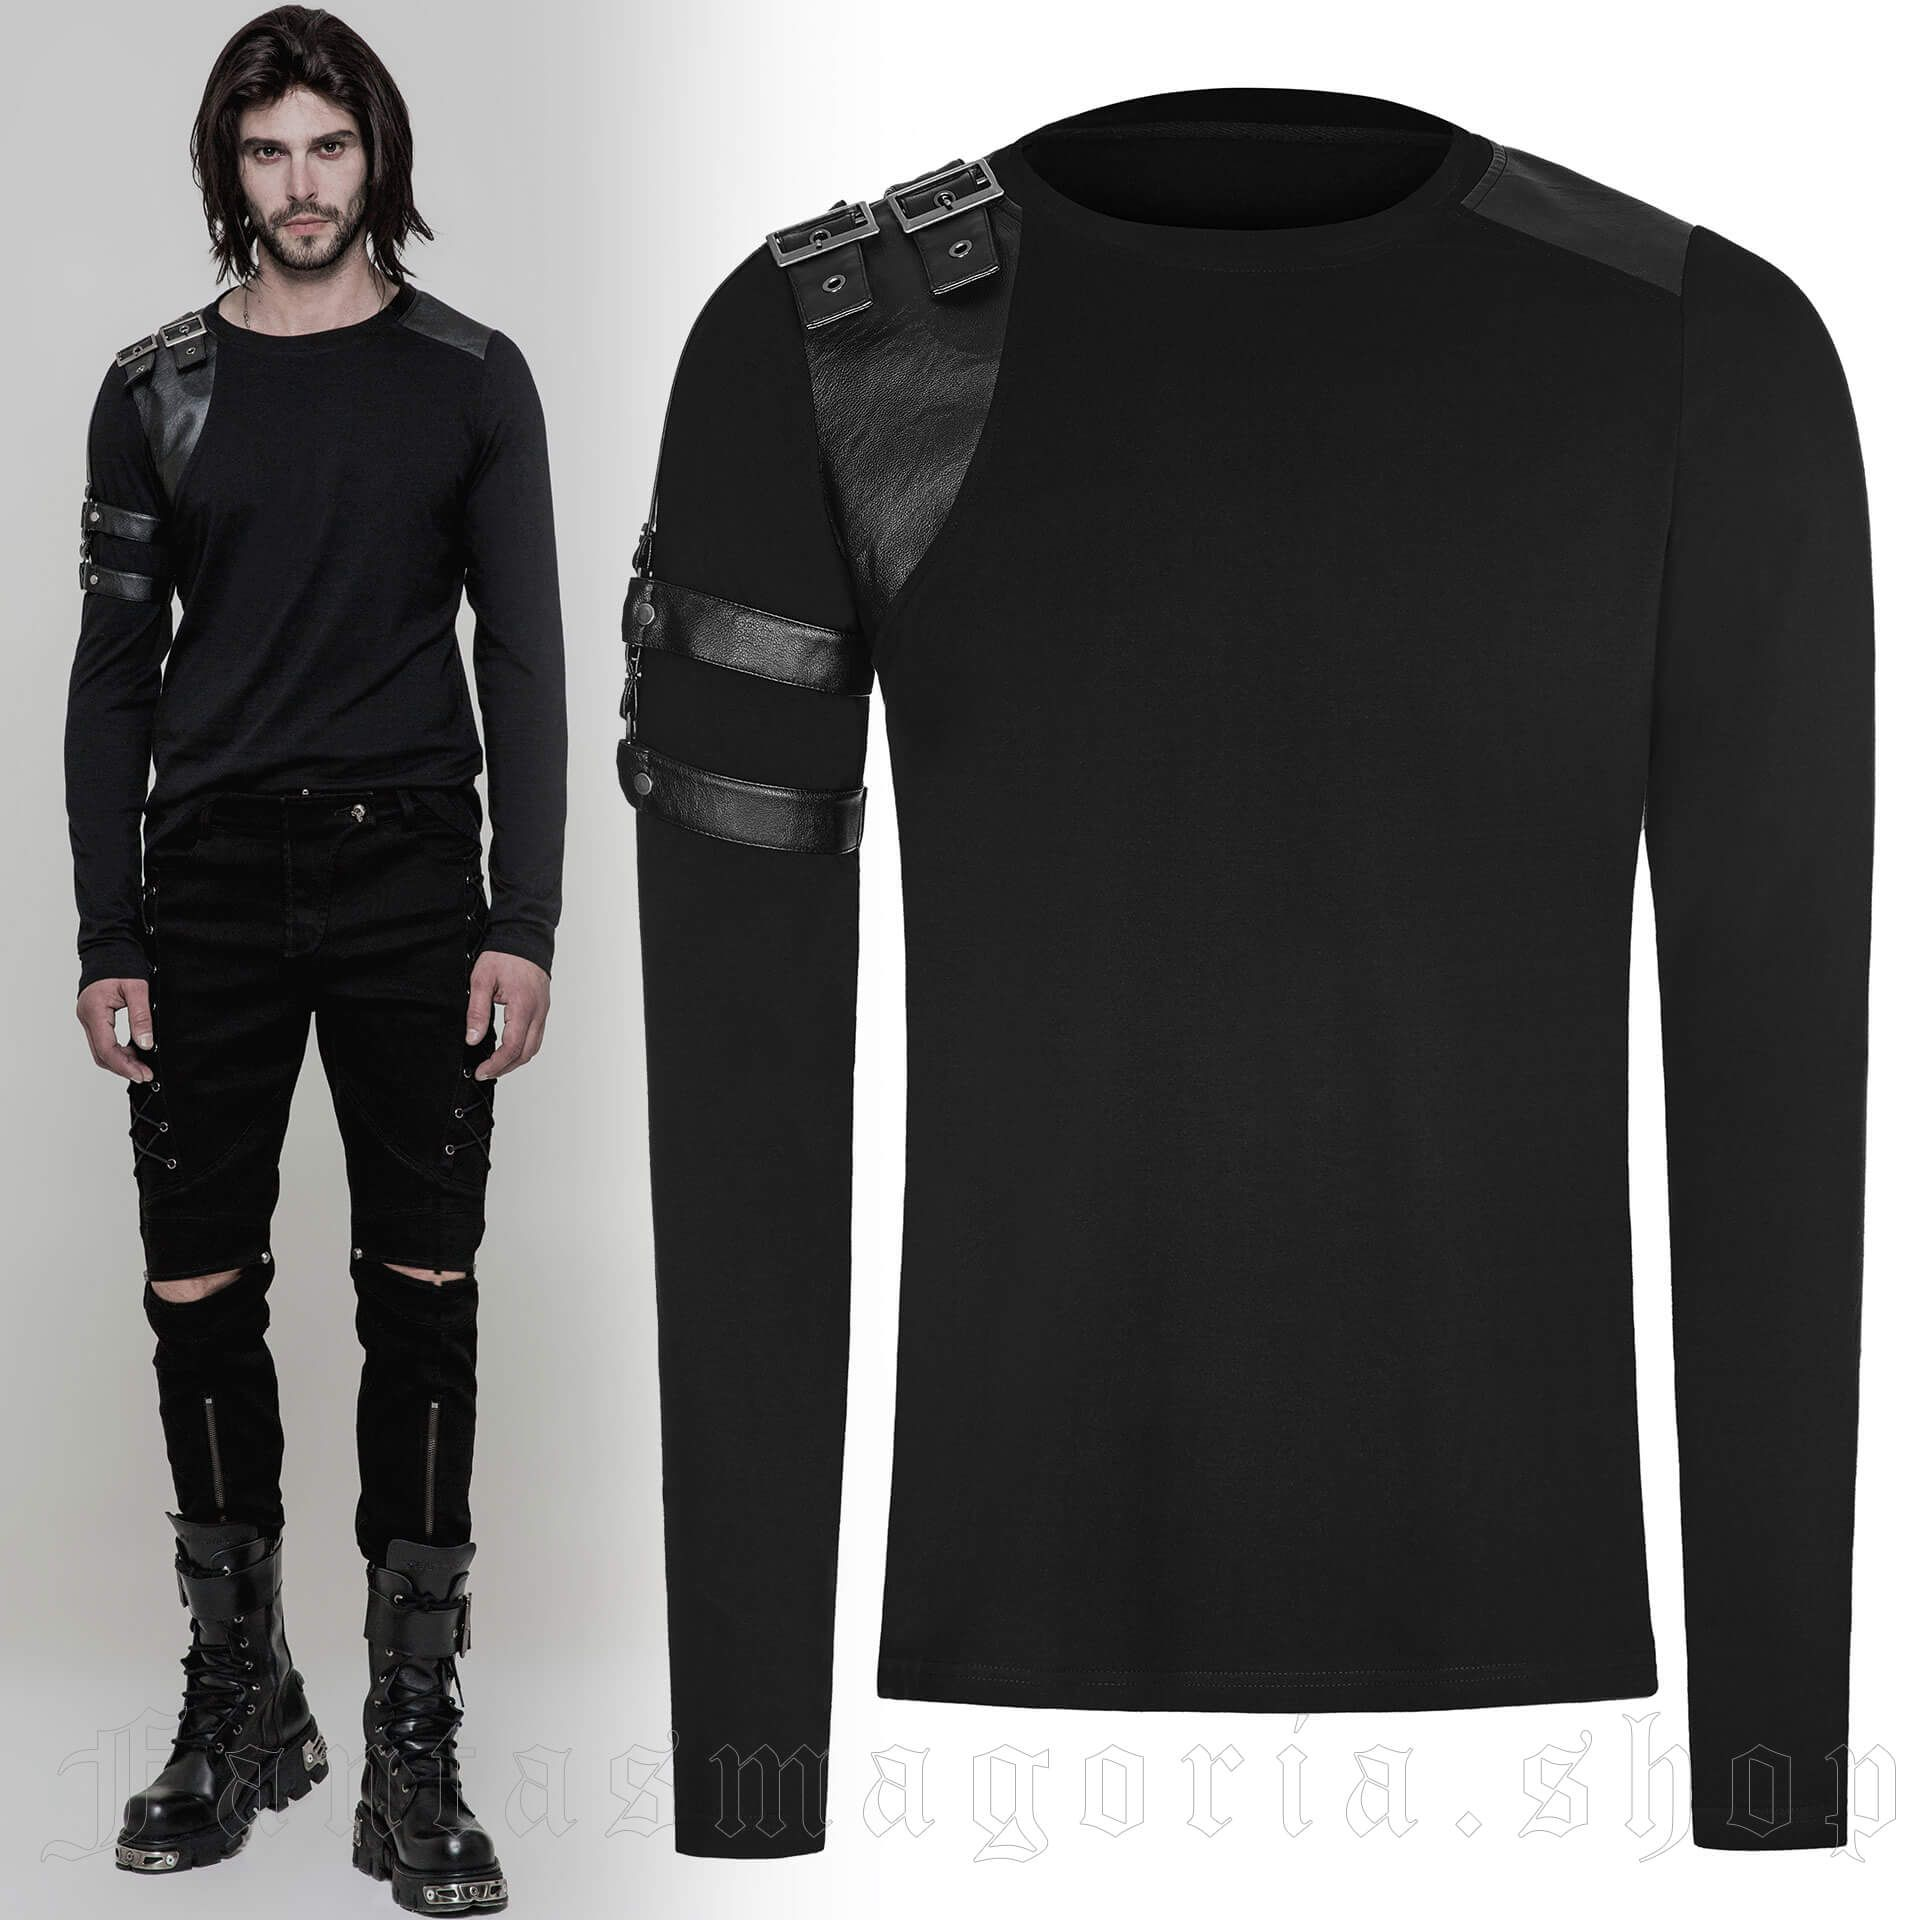 men's The Guard Longsleeve Top by PUNK RAVE brand, code: WT-513